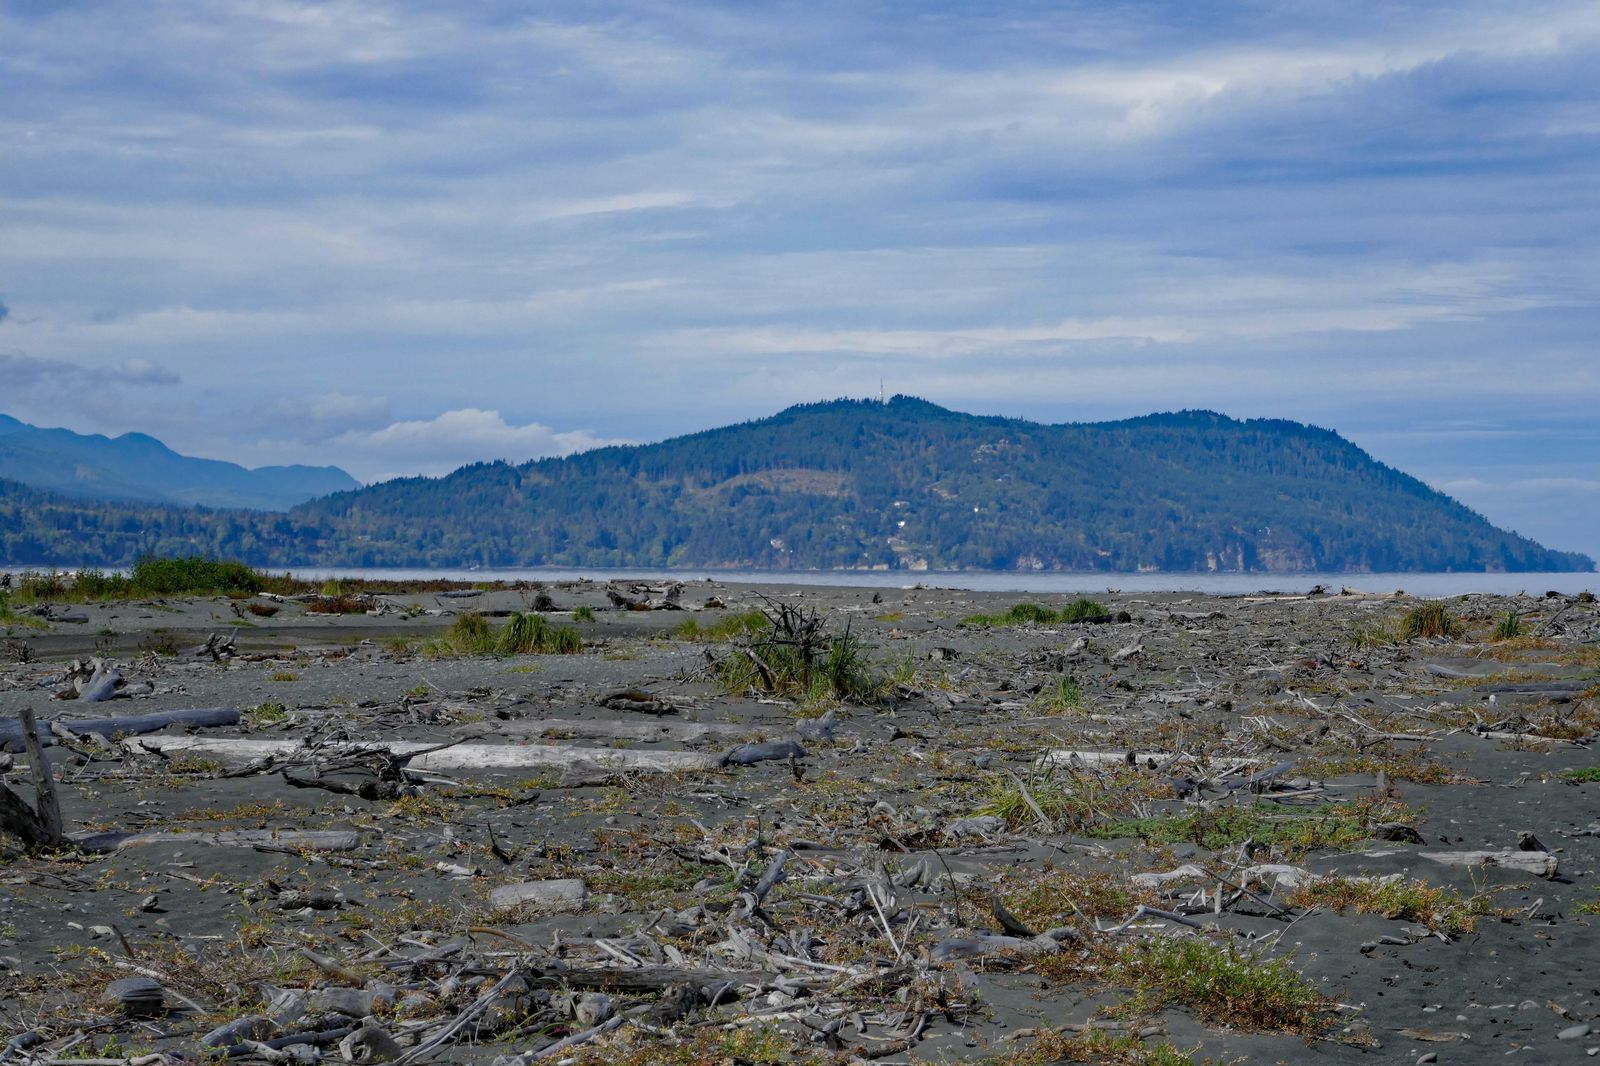 More newly deposited land with the Elwha outlet in the background